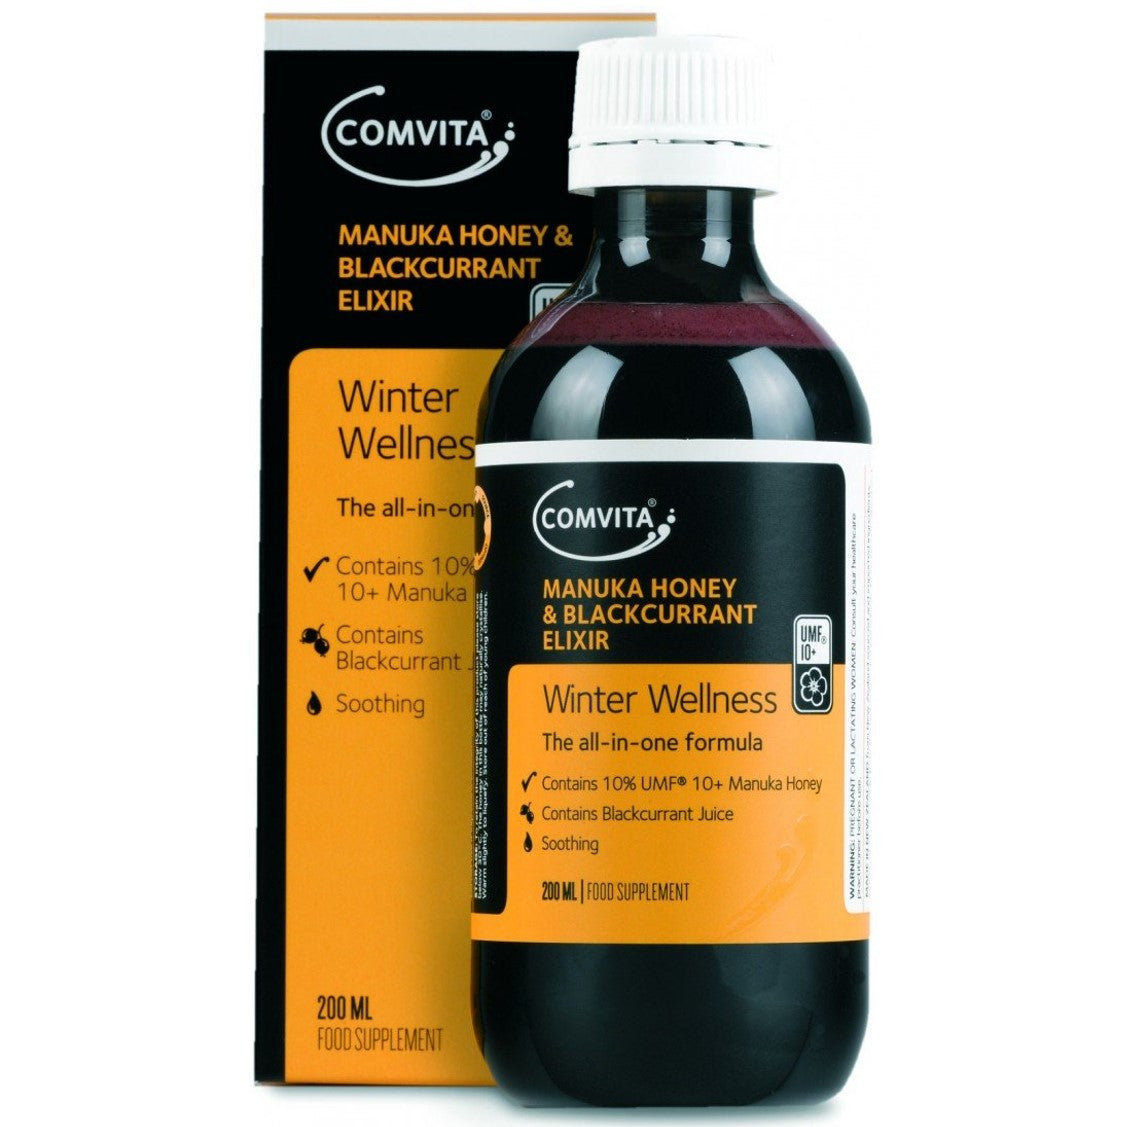 Comvita Manuka Honey & Blackcurrant Elixir,200ml-NaturesWisdom